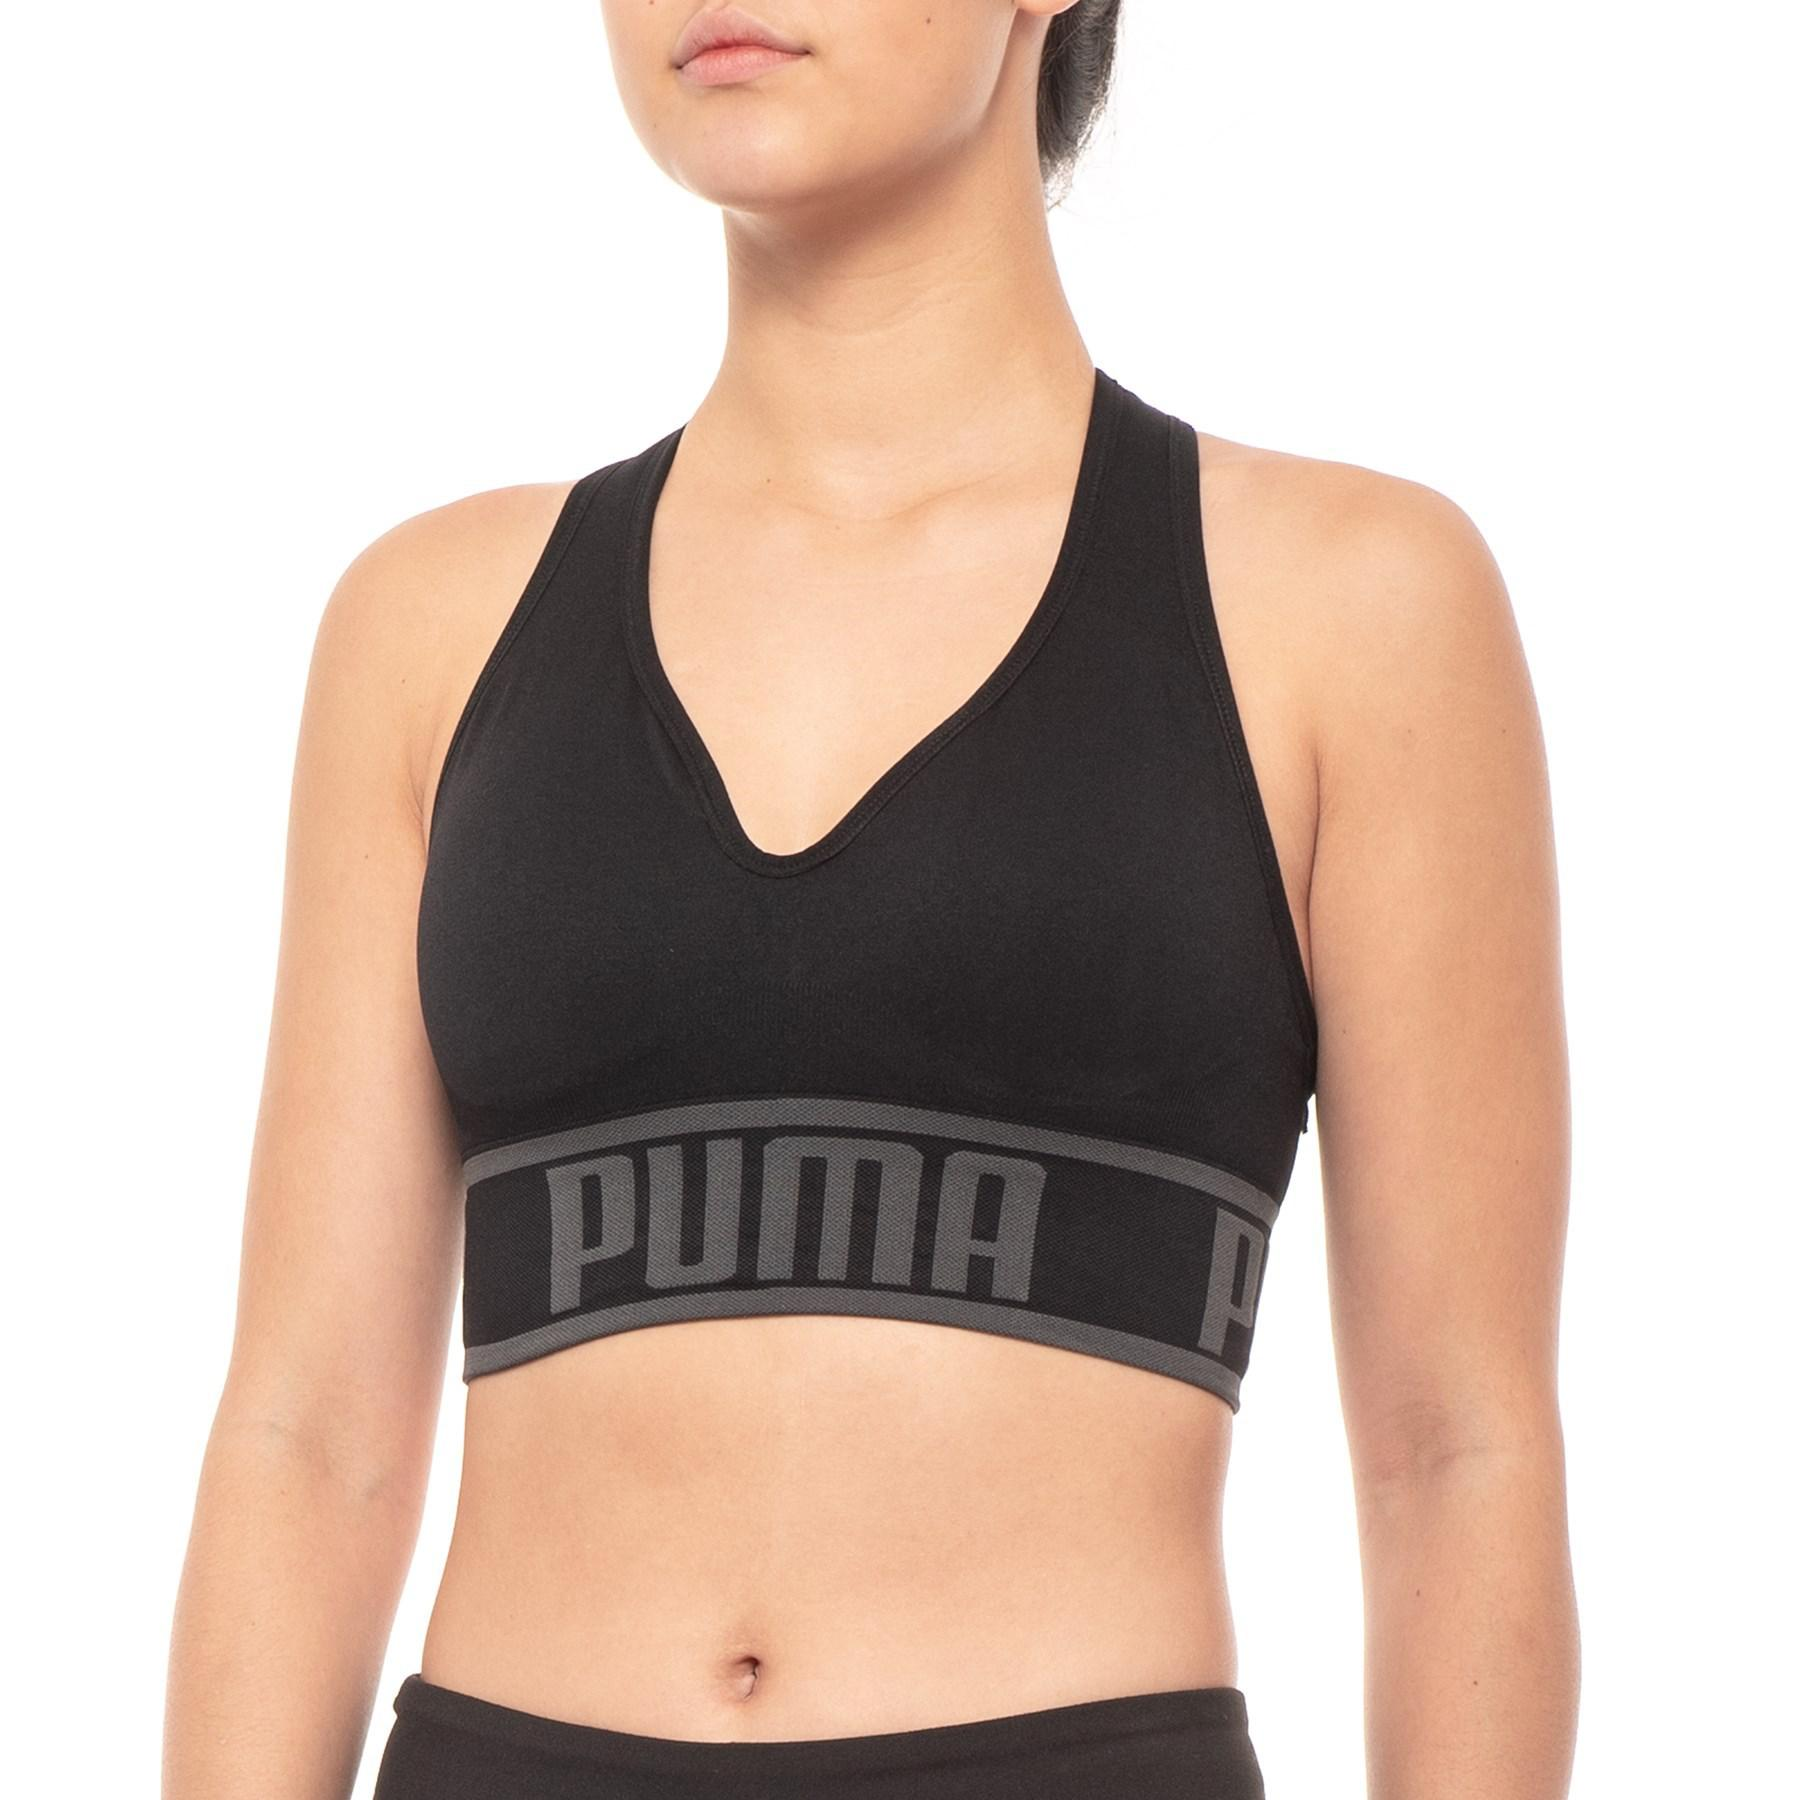 5b608d928b1 Lyst - PUMA Seamless Apex Racerback Sports Bra in Black - Save 17%